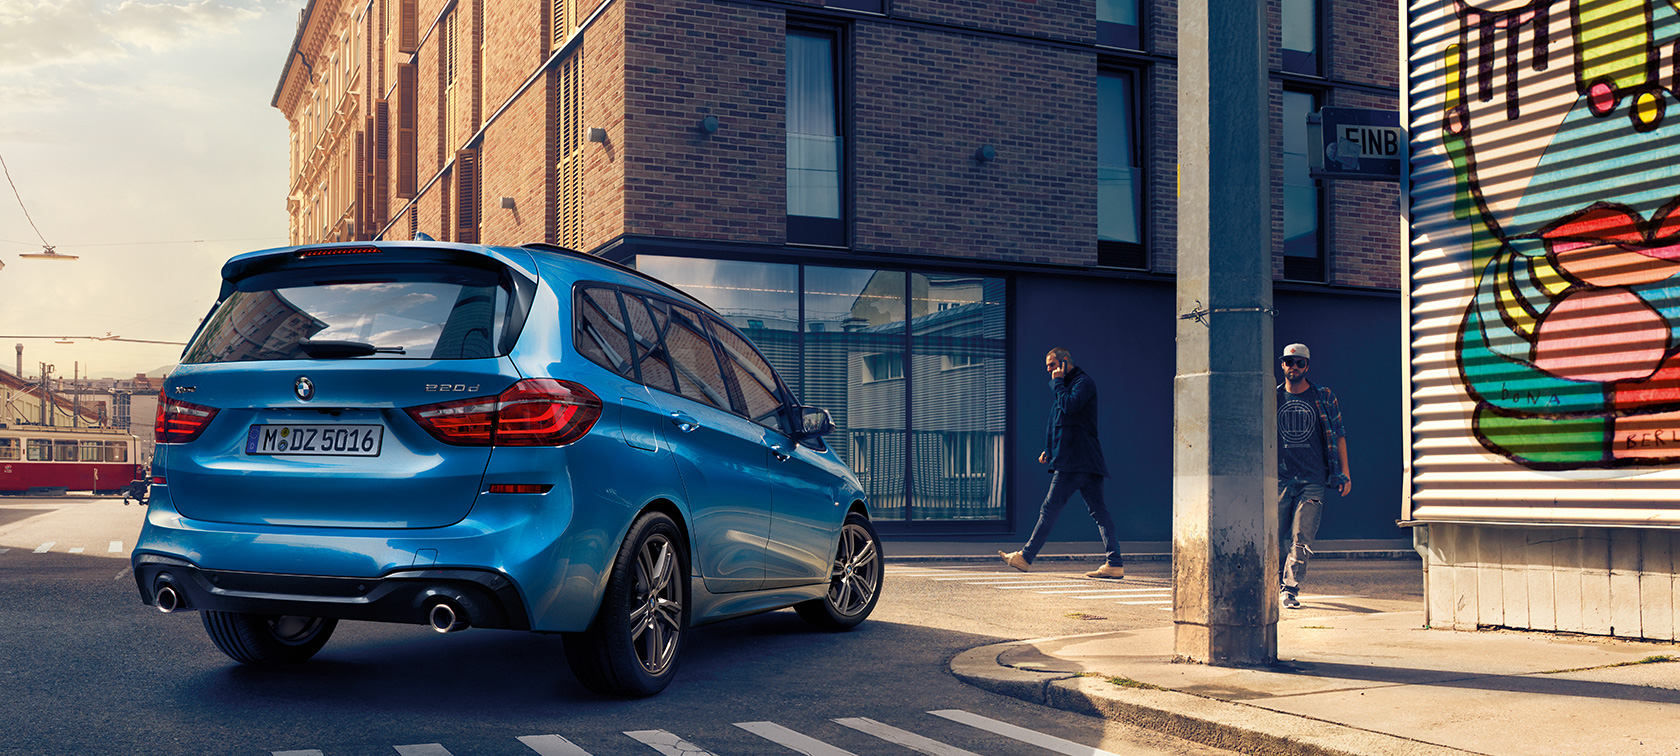 Man next to BMW 2 Series Gran Tourer F46 2018 Estoril Blue metallic bird's-eye view parking on the street